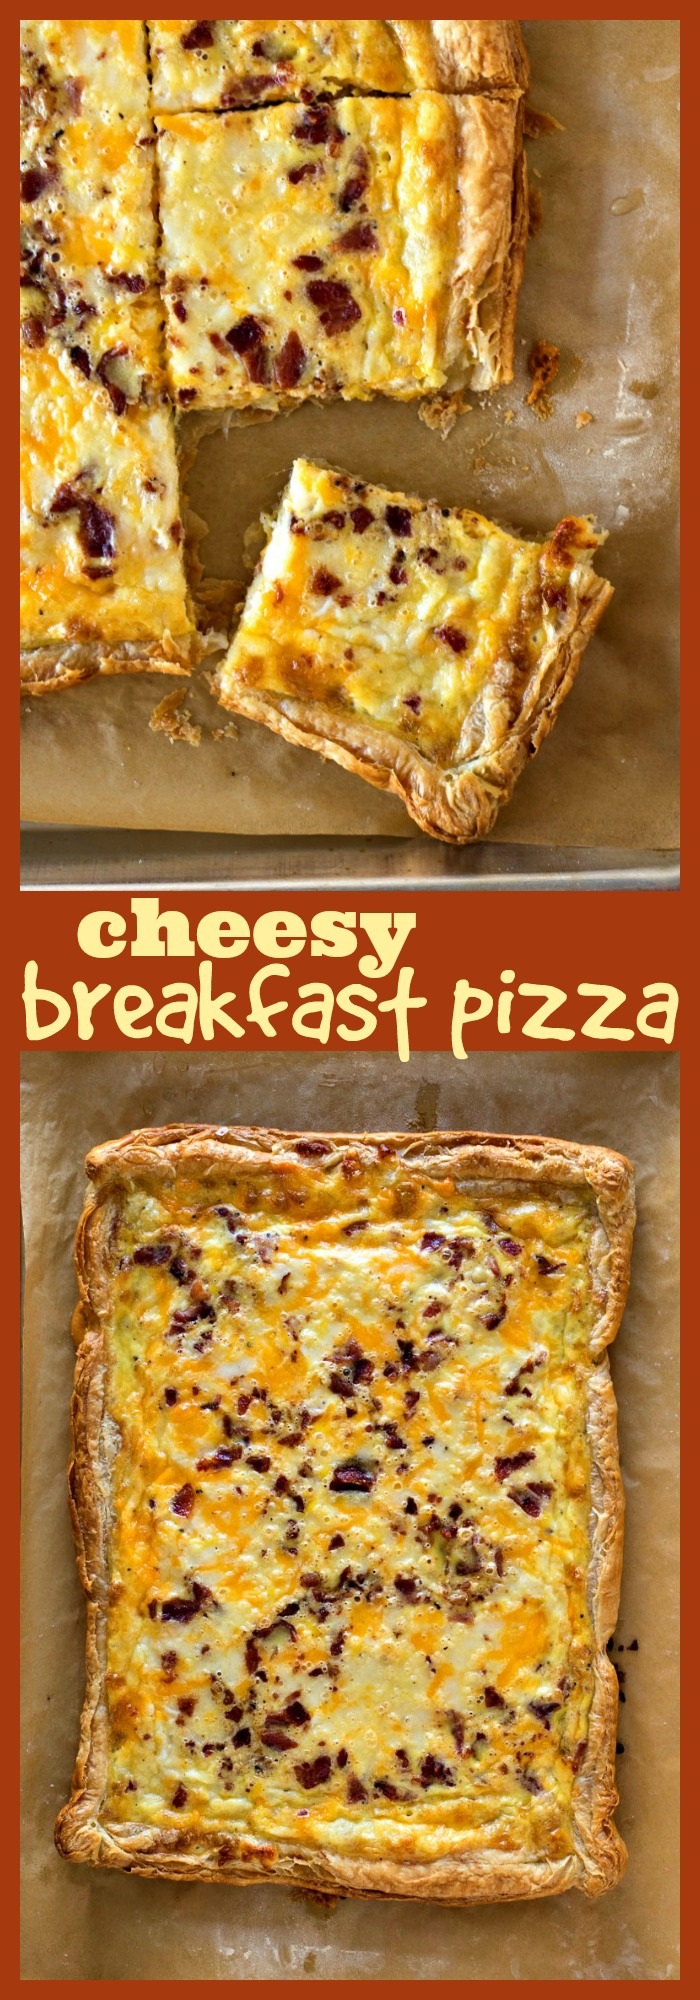 Breakfast Pizza photo collage